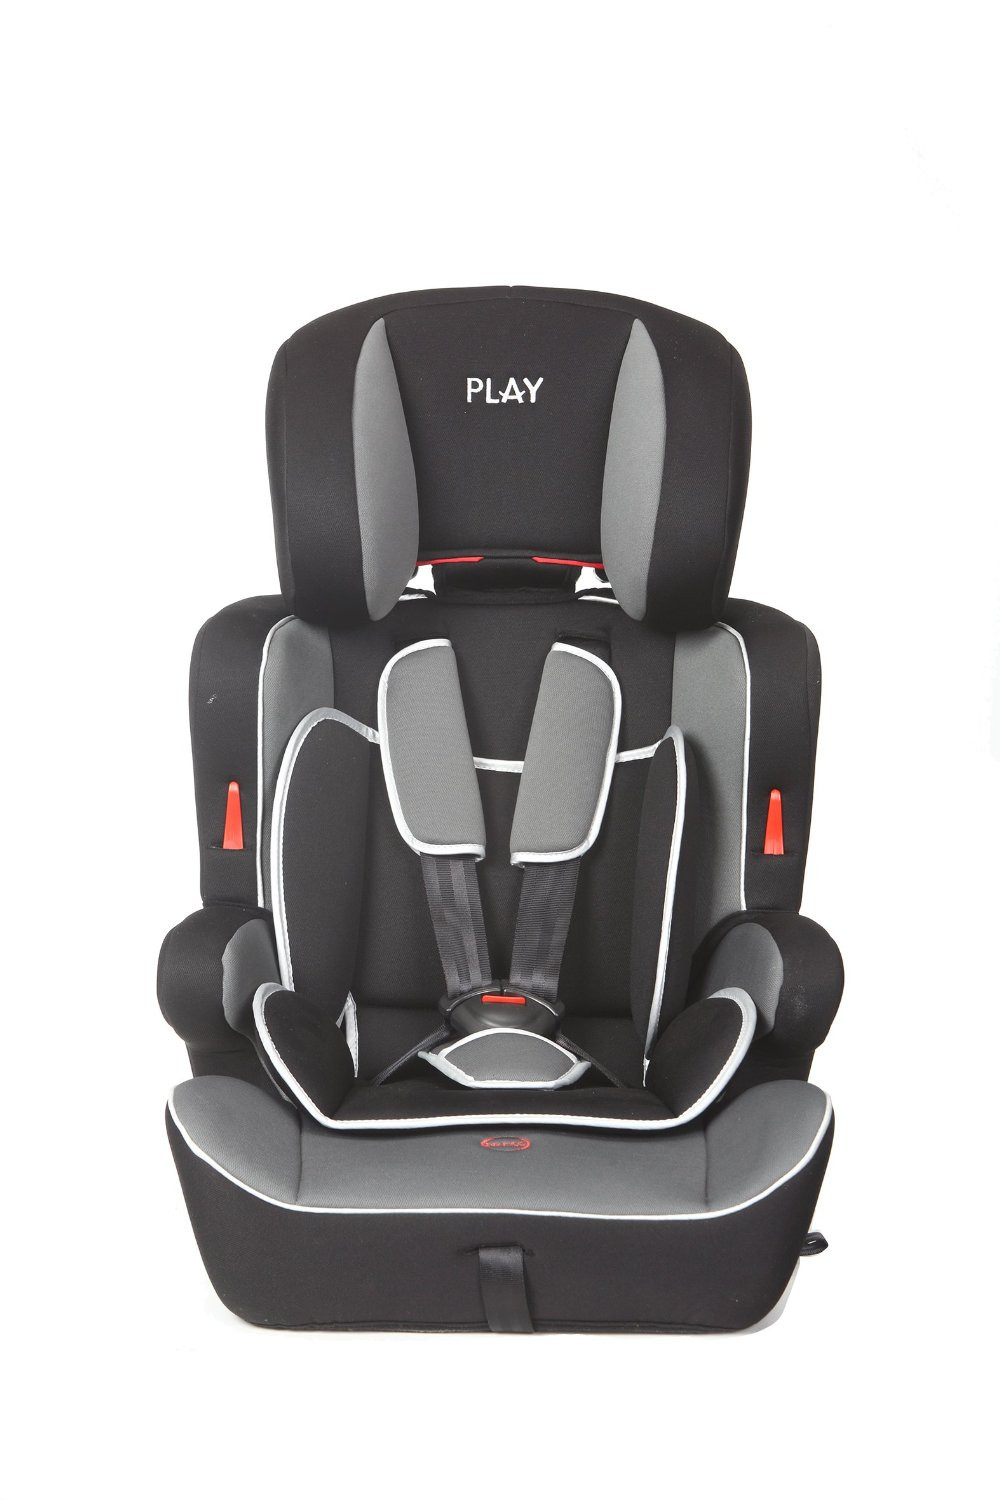 Silla de coche play safe ten grupo 1 2 3 casualplay for Silla grupo 1 2 3